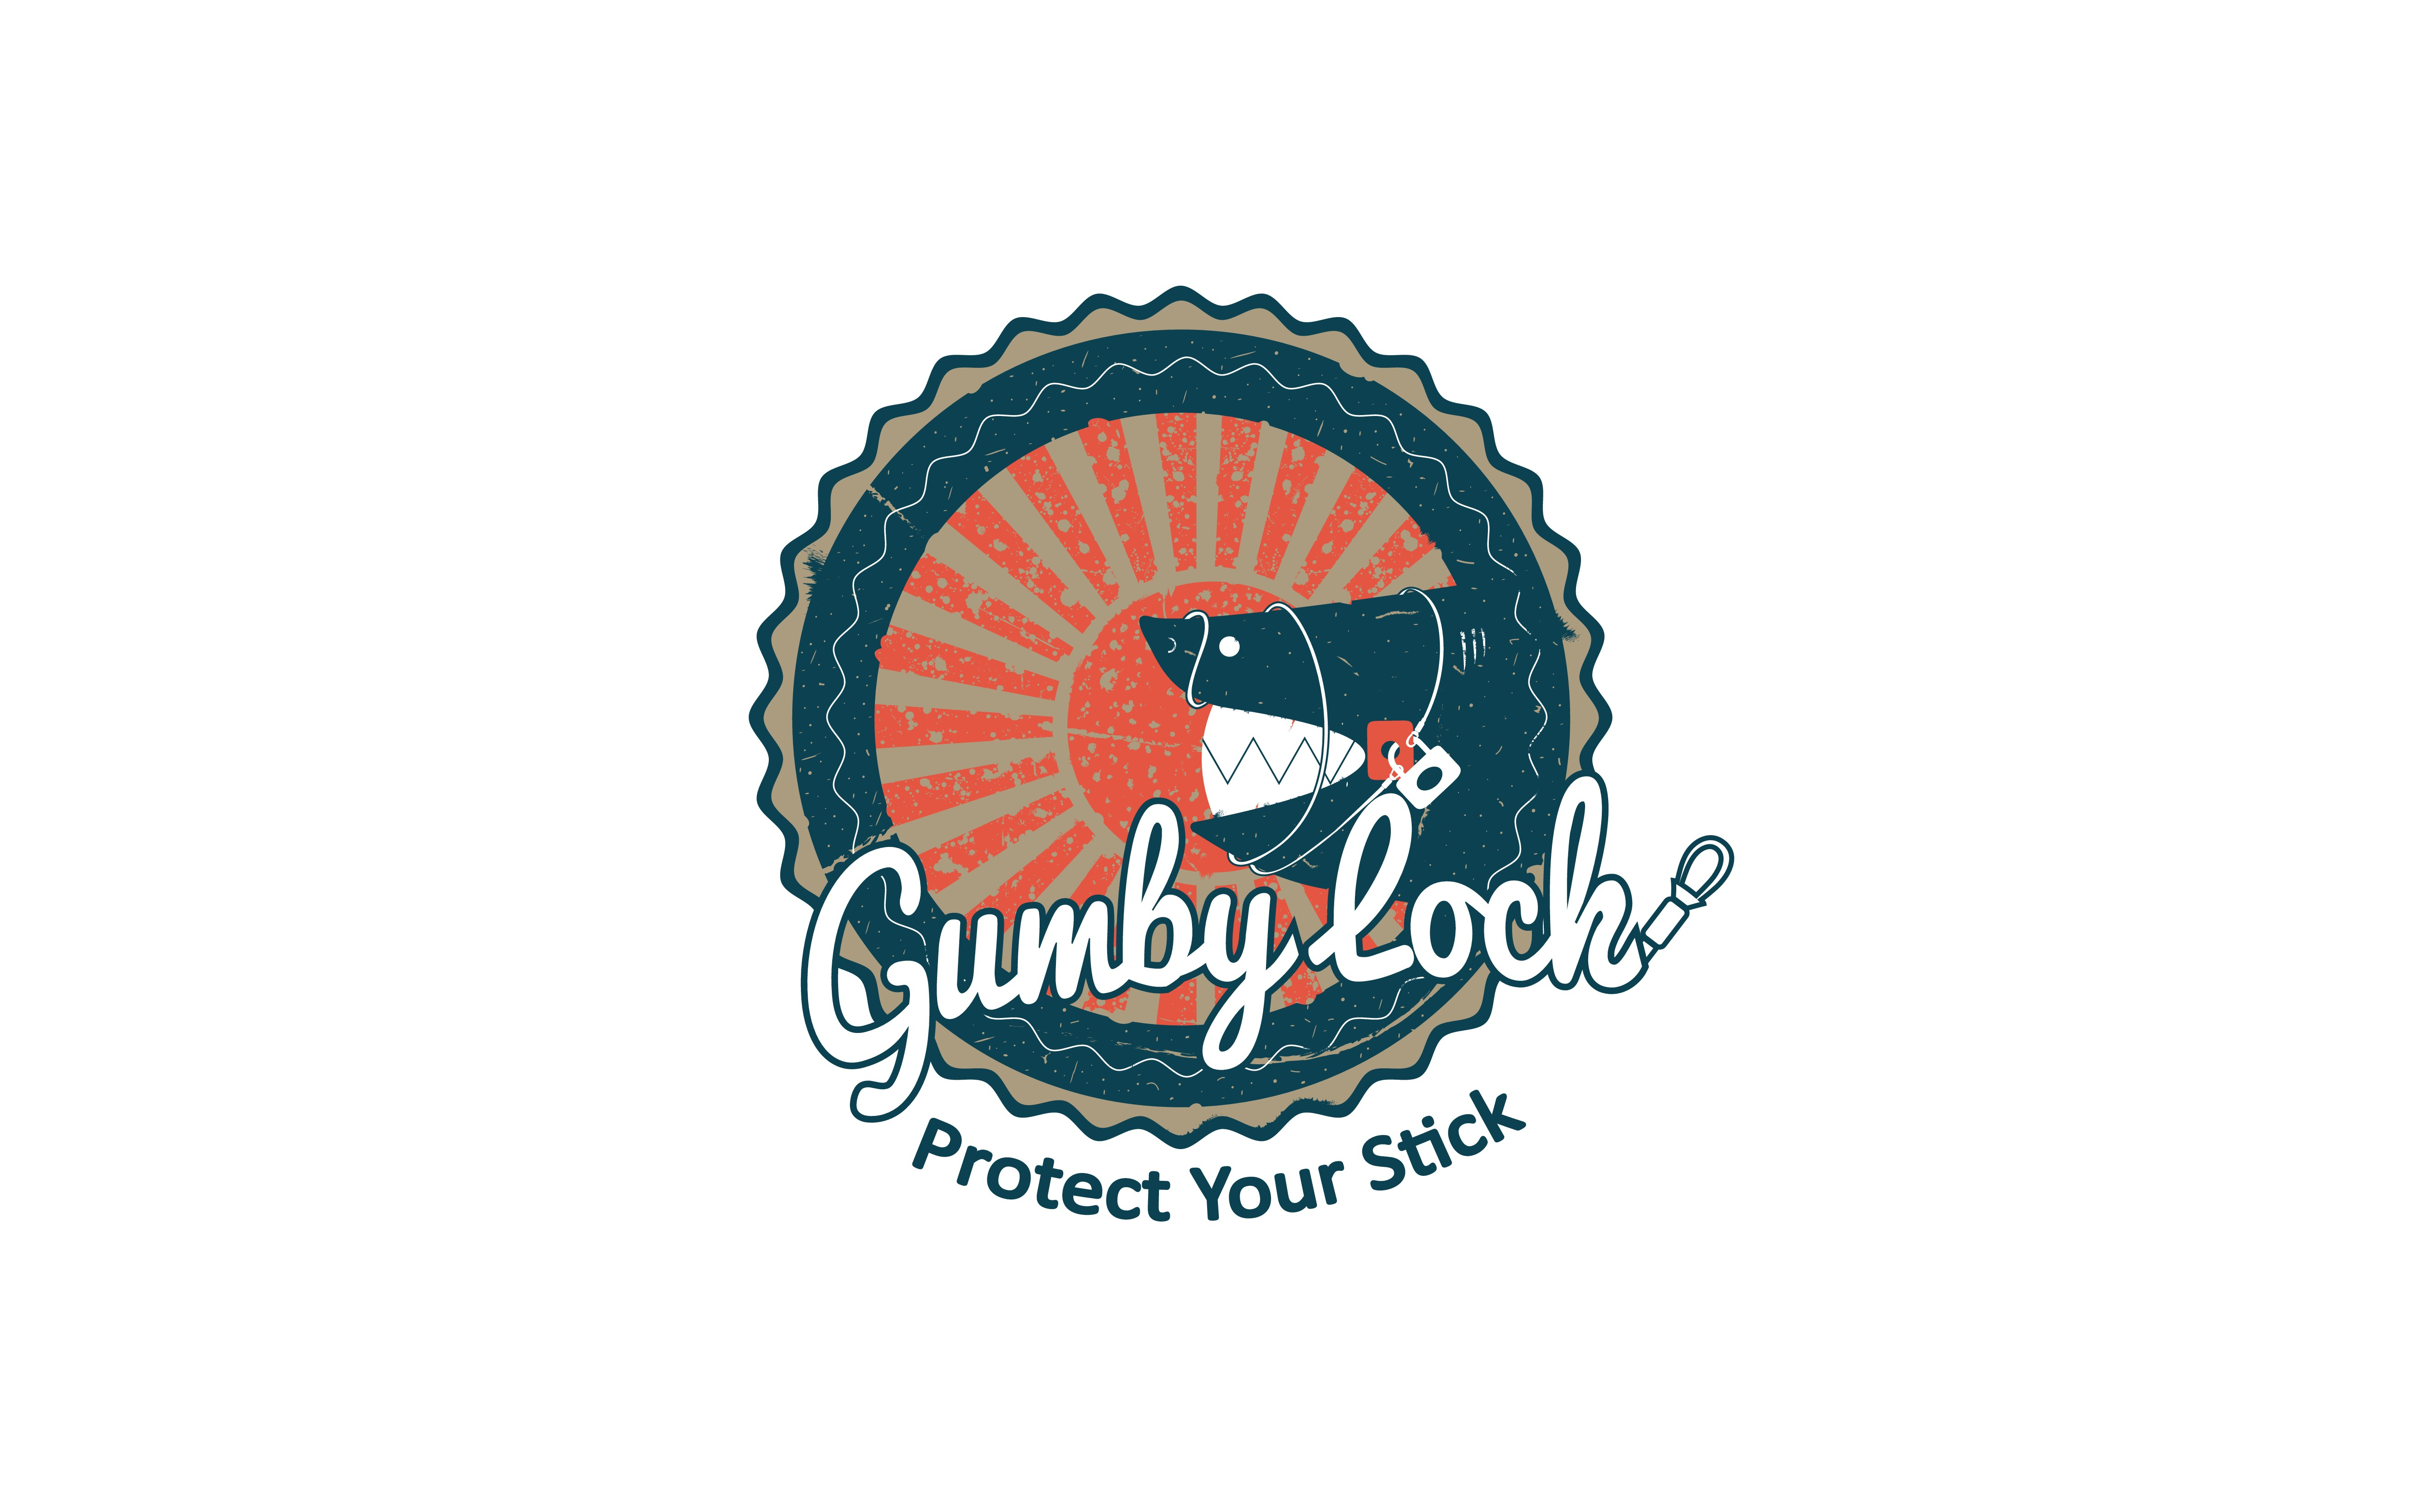 Fun, bright and lively logo for a surfboard lock. EDIT: Perhaps with a vintage/retro surfing feel?